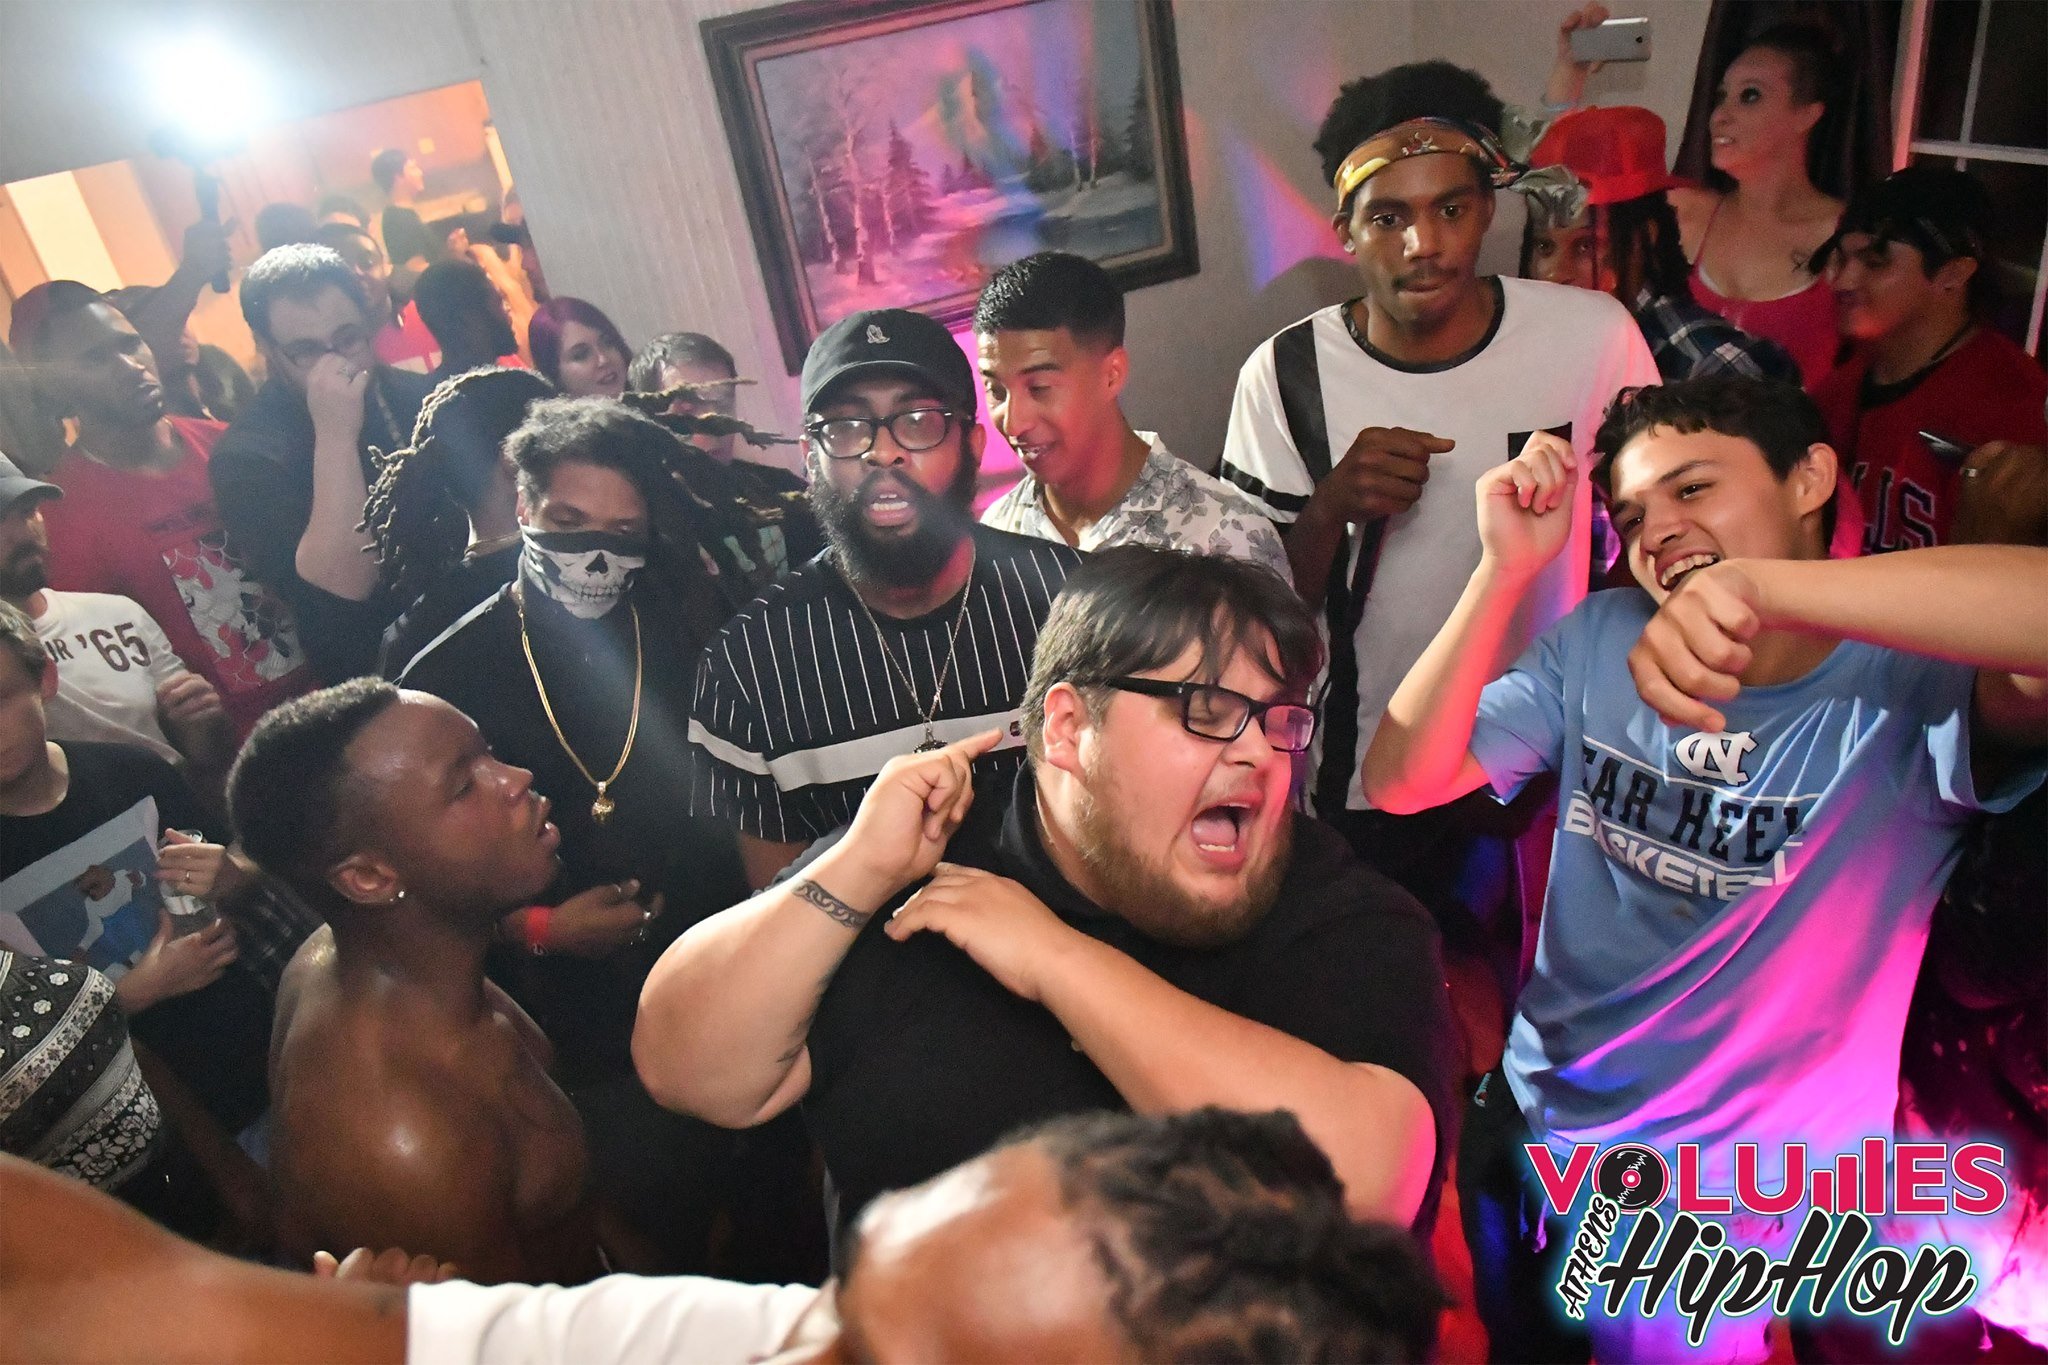 BYV/theYOD performing at Volumes House Party 8.26.17